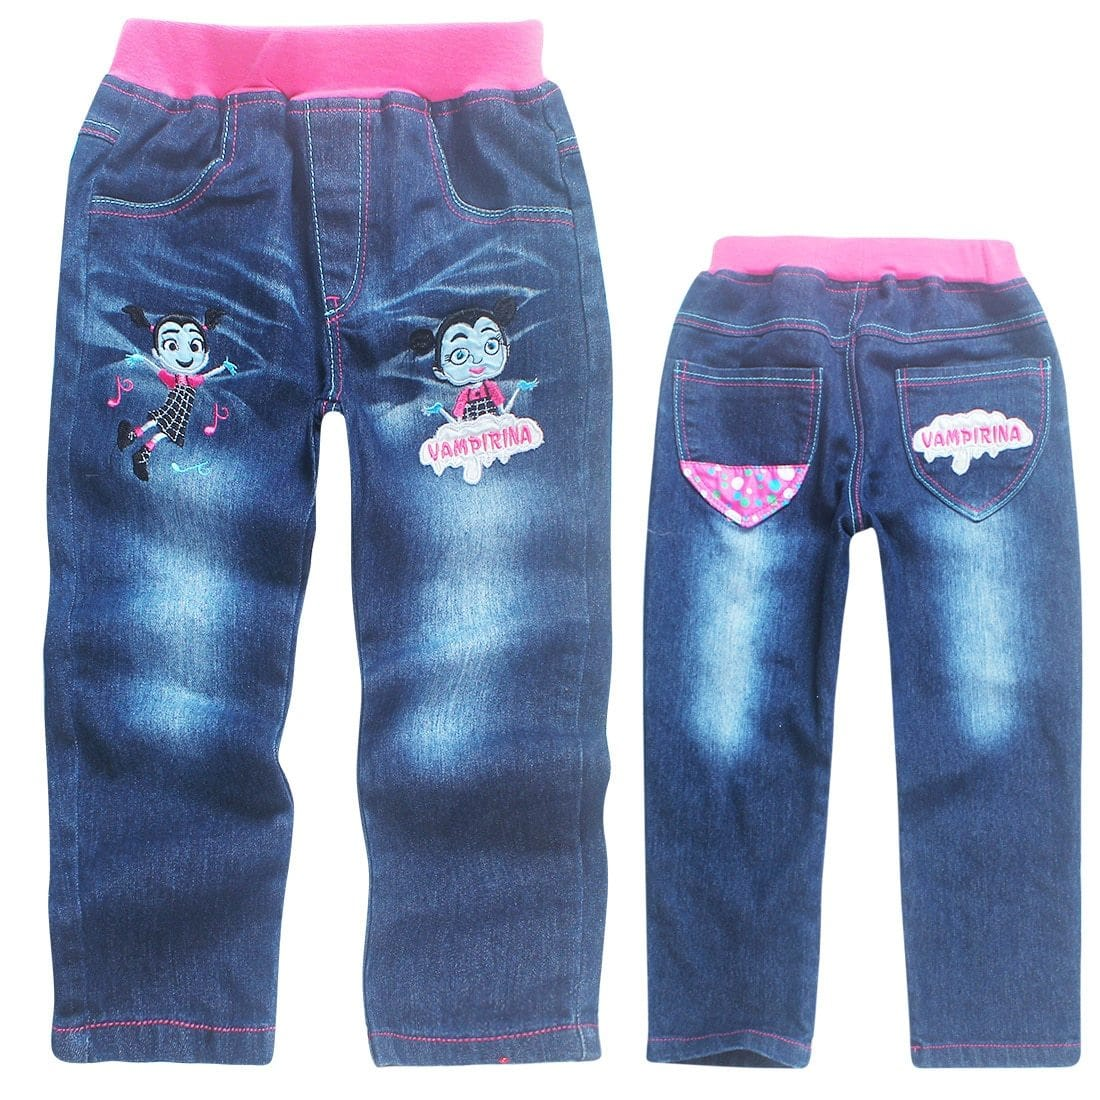 Z&Y 3-8Years Vampirina Clothes Pants for Children Jeans Kids Girl Pants Jeans Enfants Fille 2017 Pantalon Enfant Garcon 0757 - EM